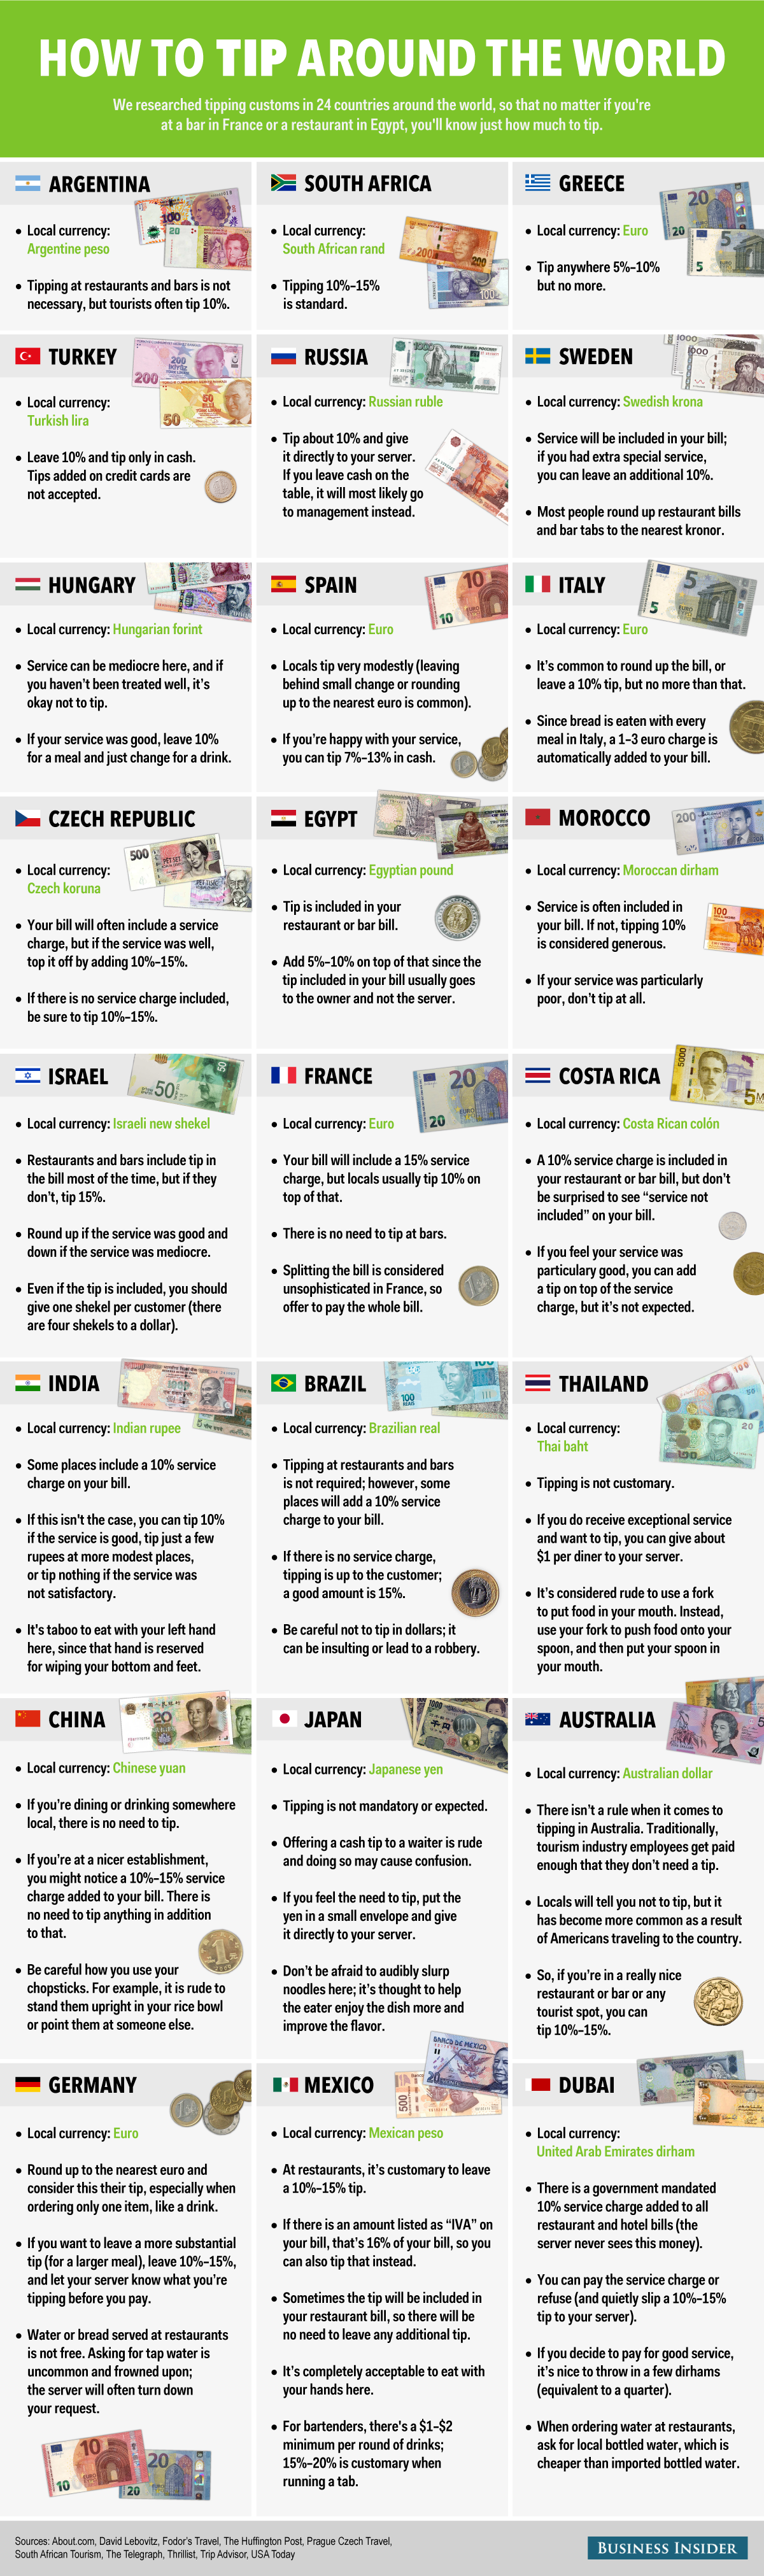 how to tip around the world